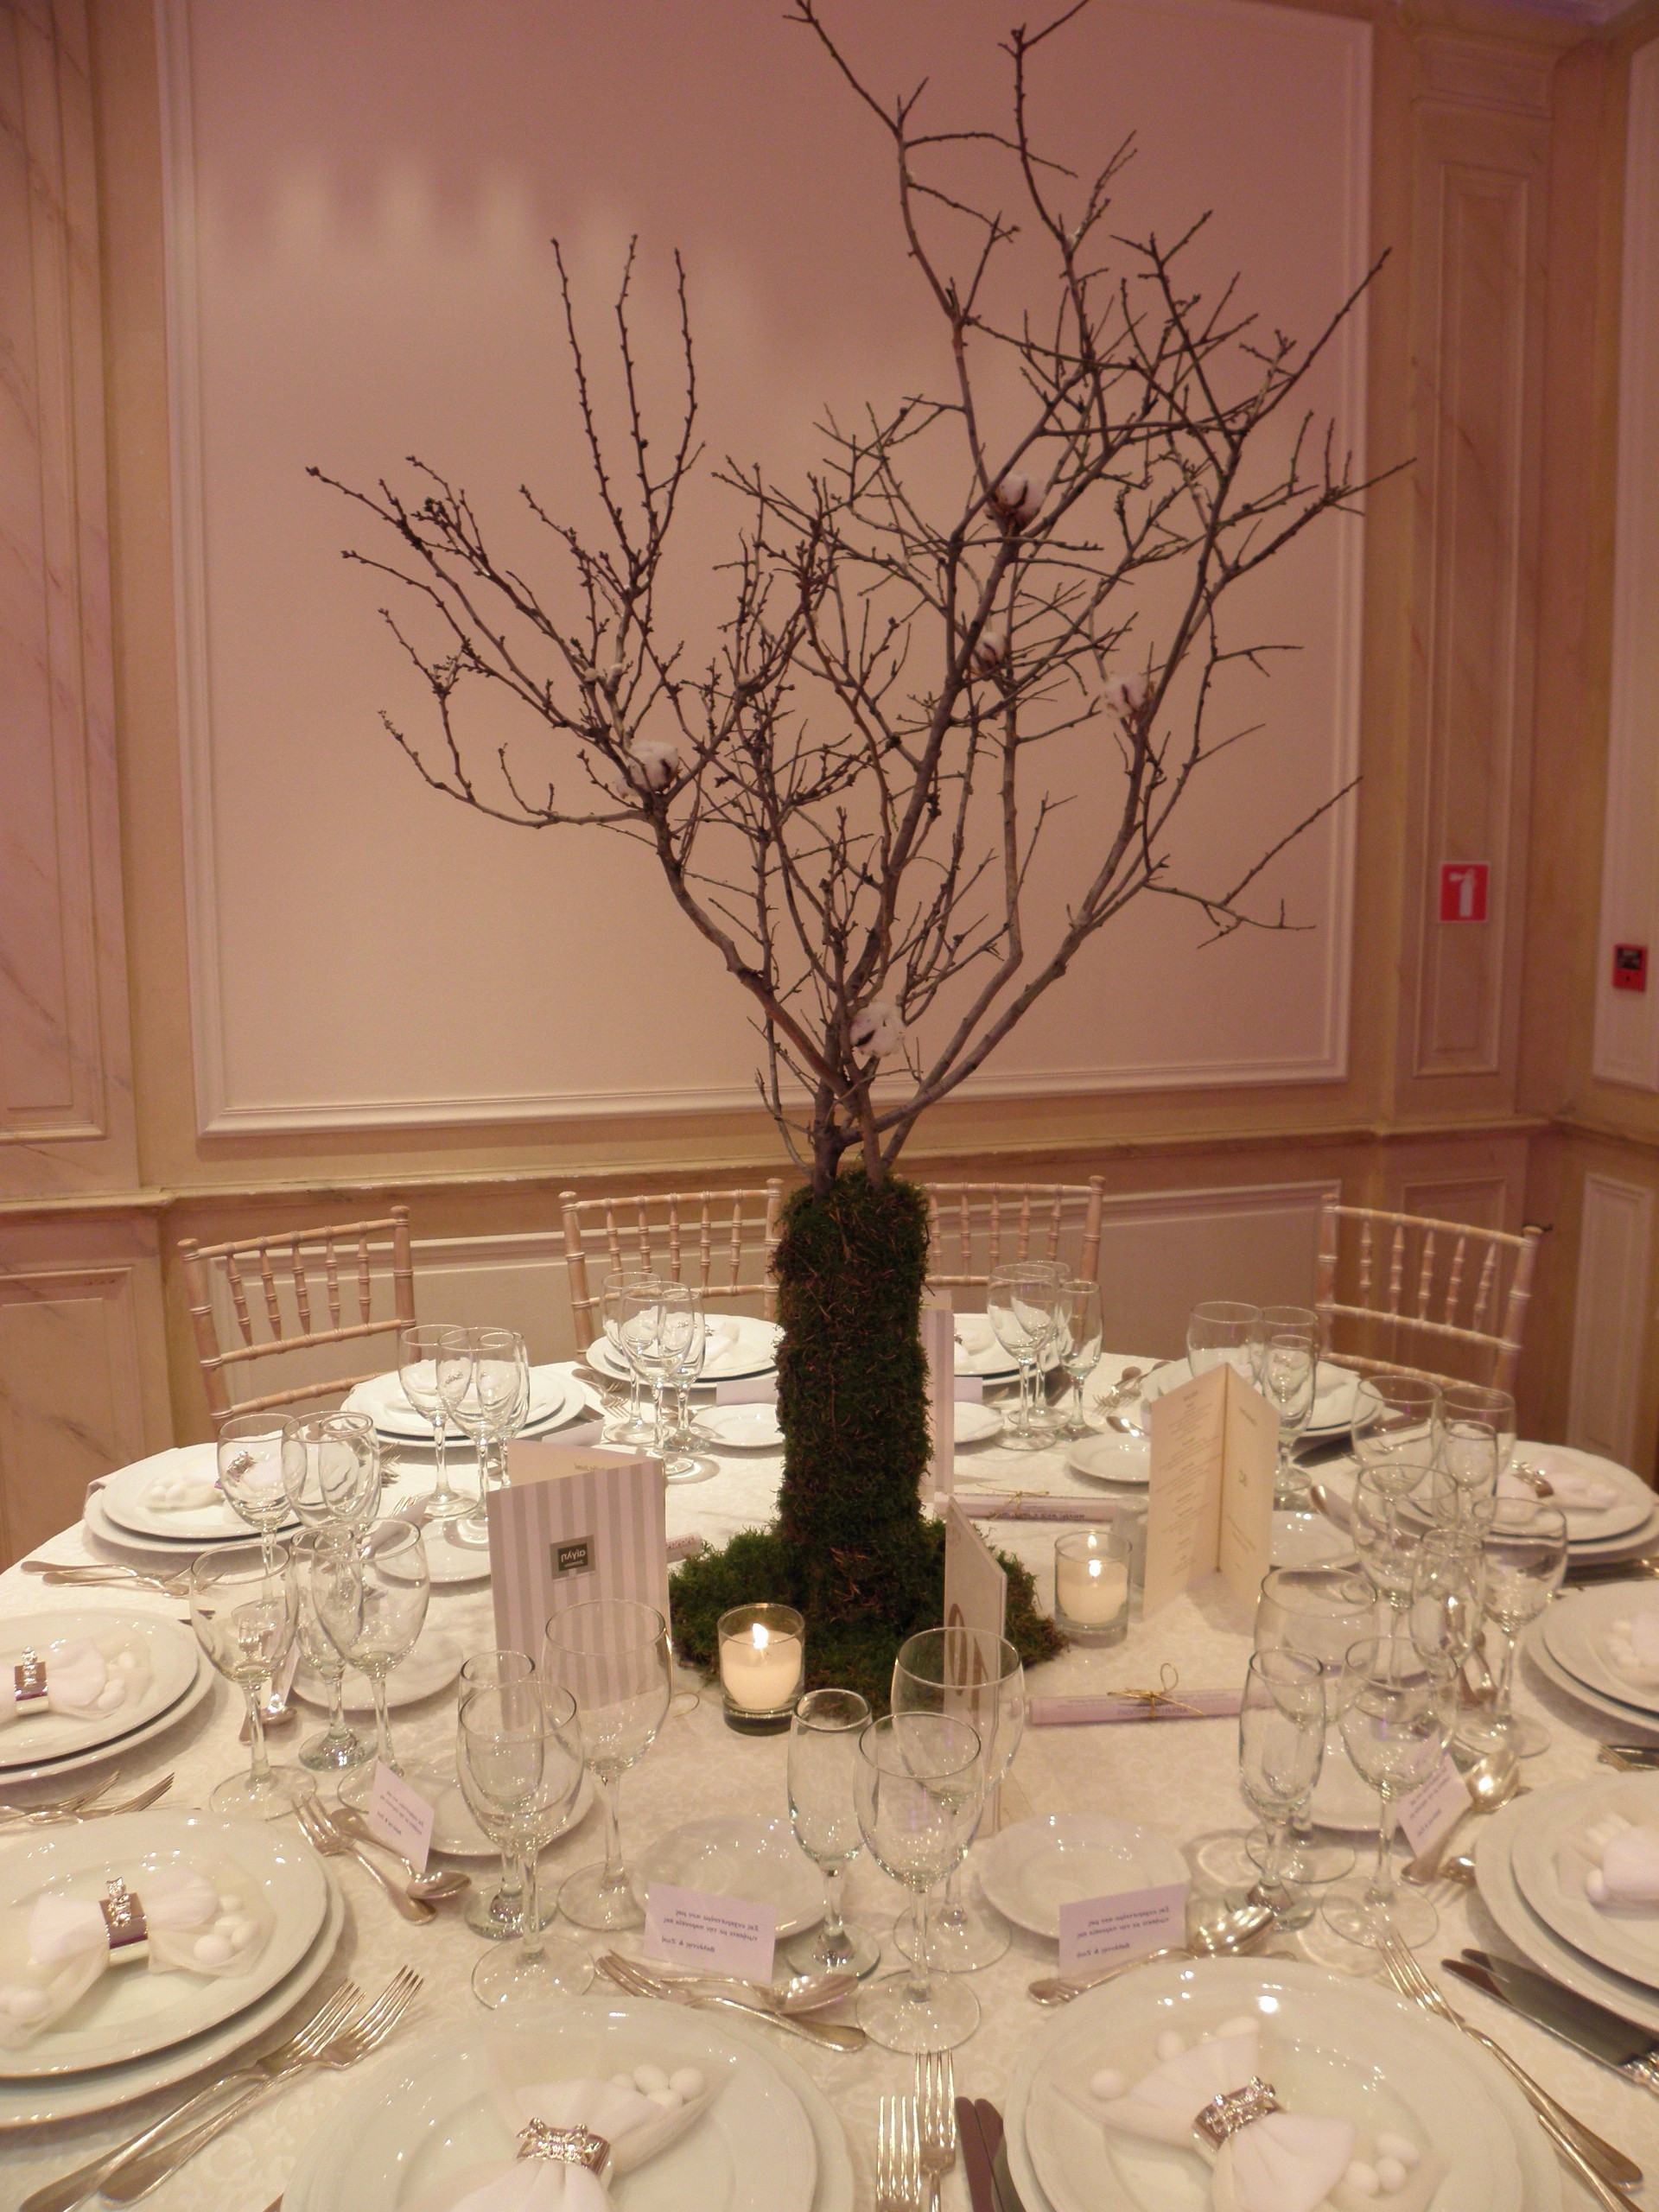 decorative branches for vases of 18 beautiful flower centerpieces for party flower decoration ideas regarding flower centerpieces for party new flower table decorations inspirational boat centerpieces 0d design